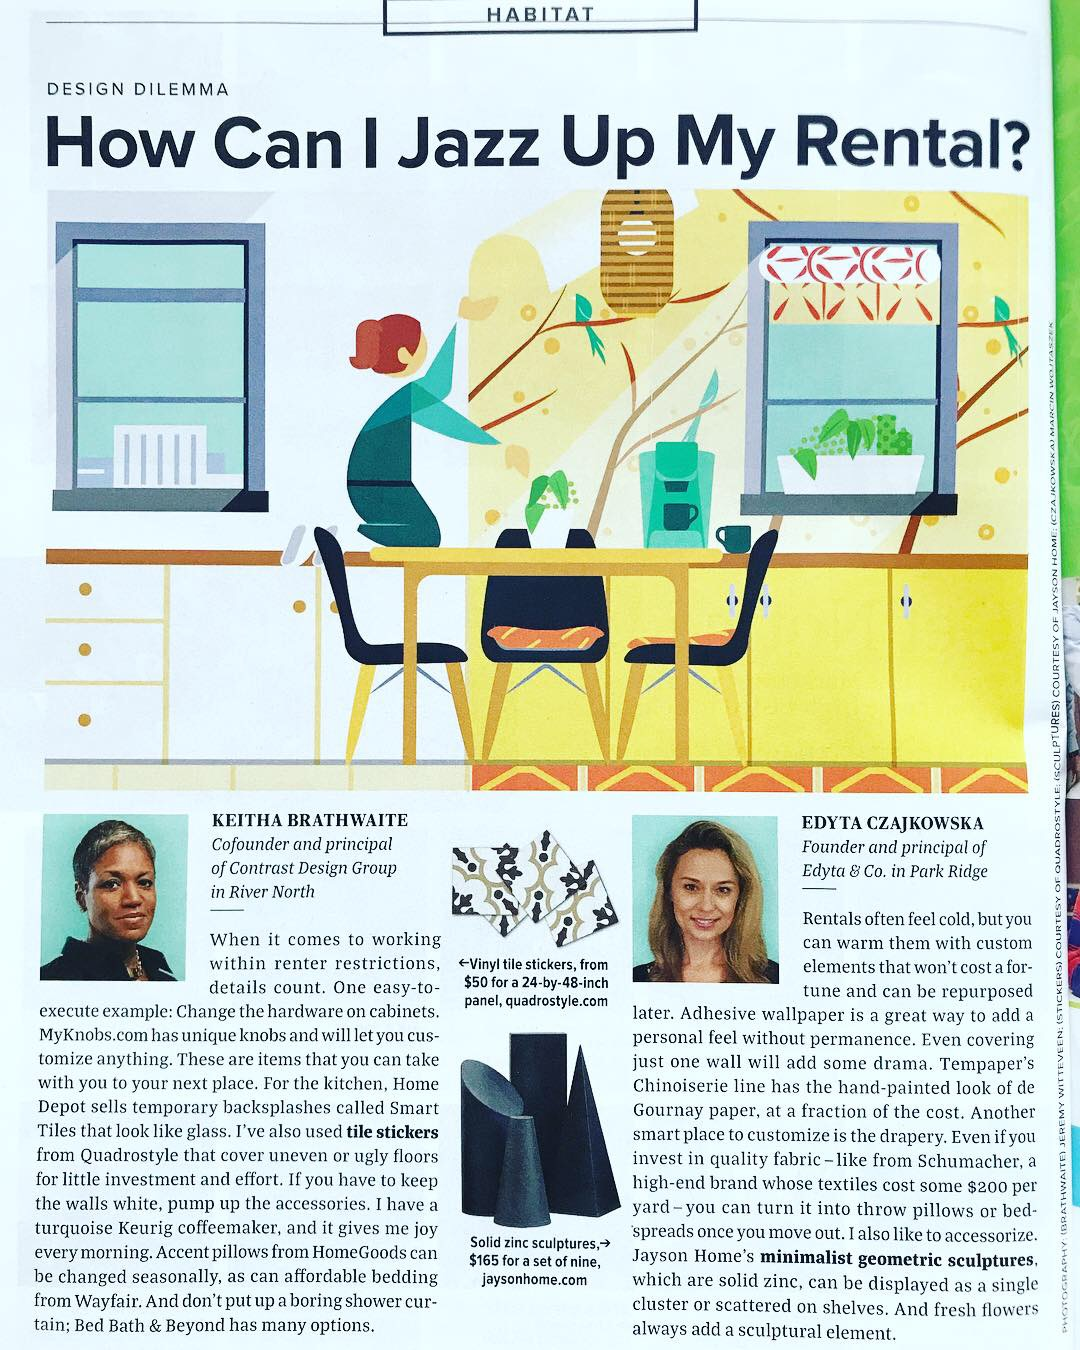 Chicago Magazine September 2018 How Can I Jazz up My Rental.JPG